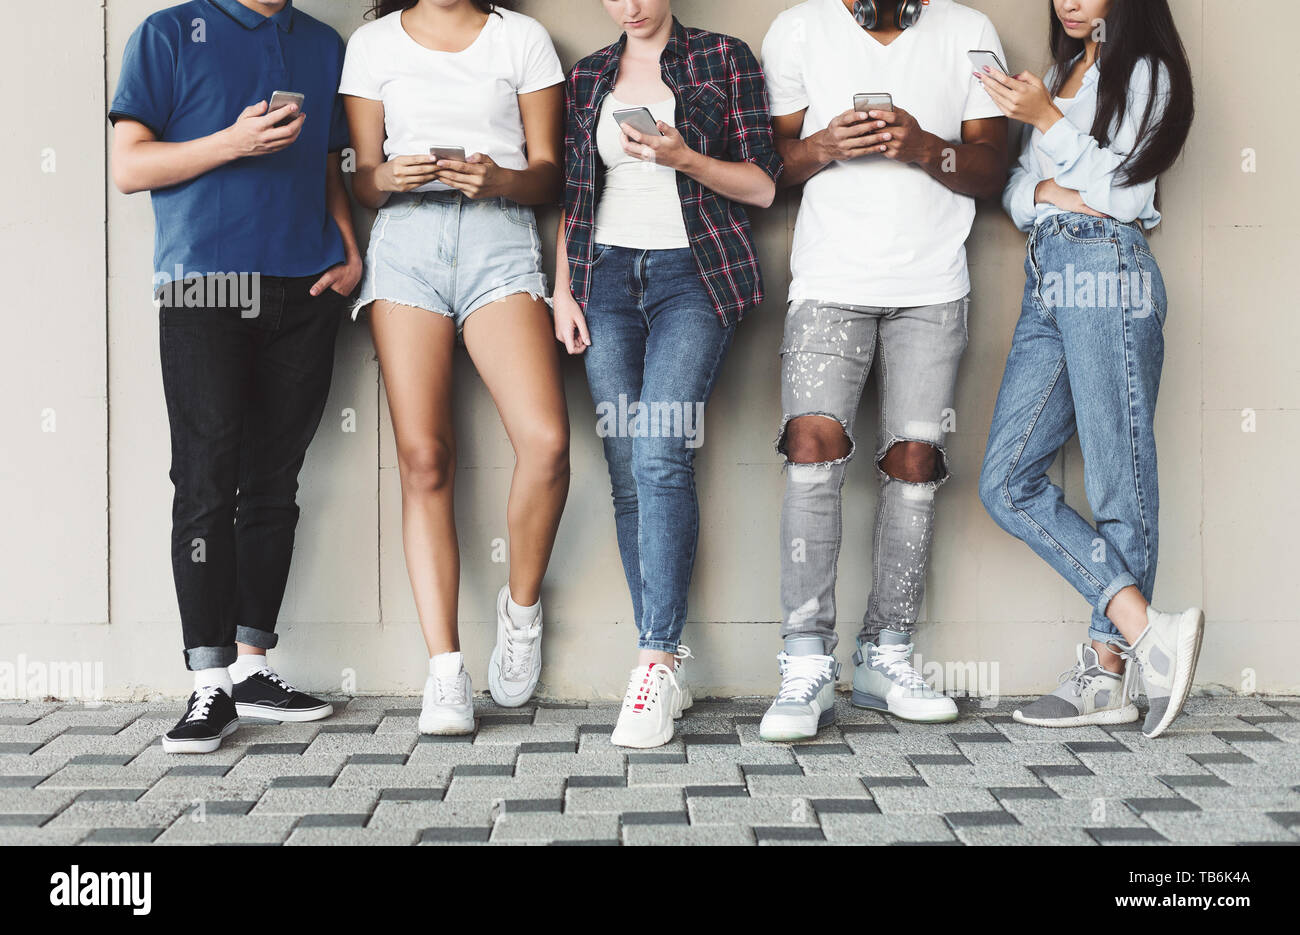 Always connected people on modern mobile phones. Group of teenagers using cellphones outdoor, free space - Stock Image